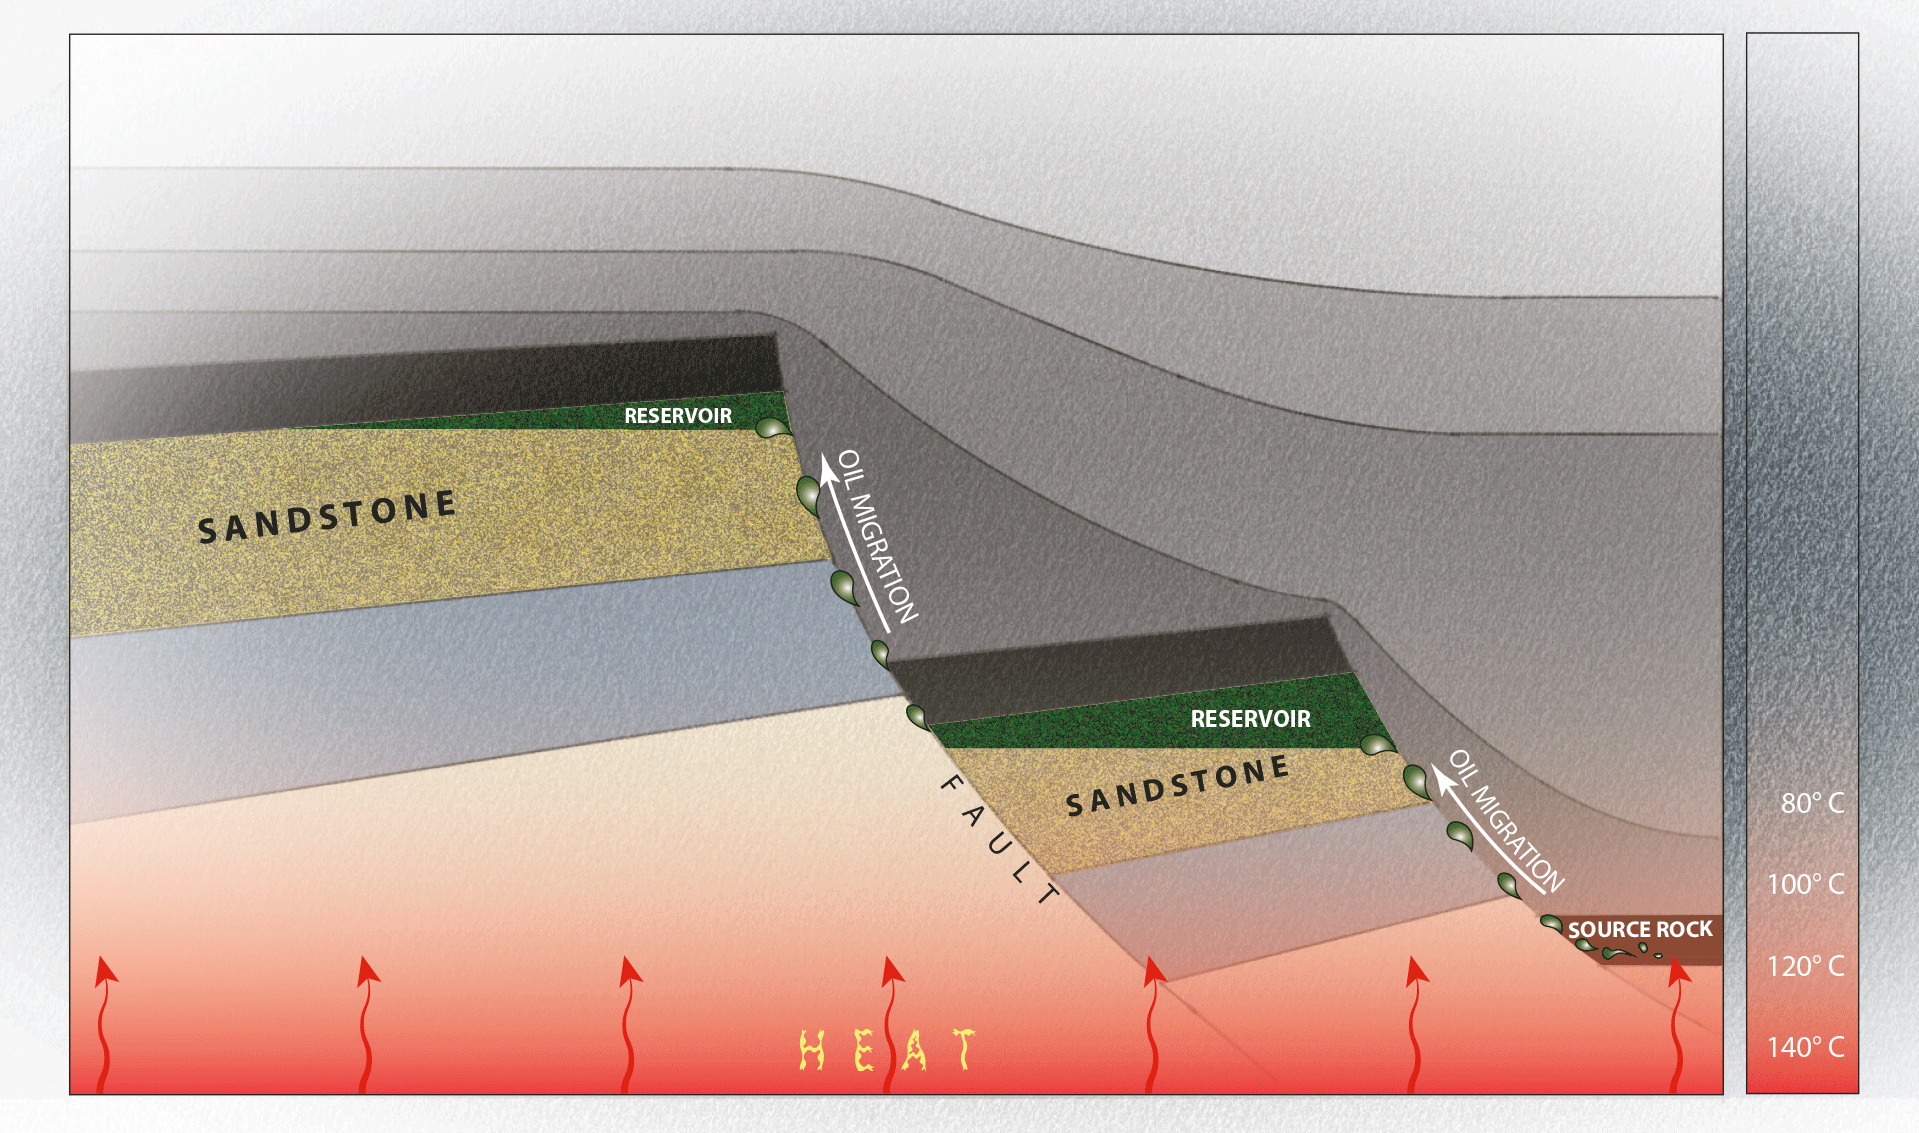 Illustration of how oil and gas reservoirs are formed